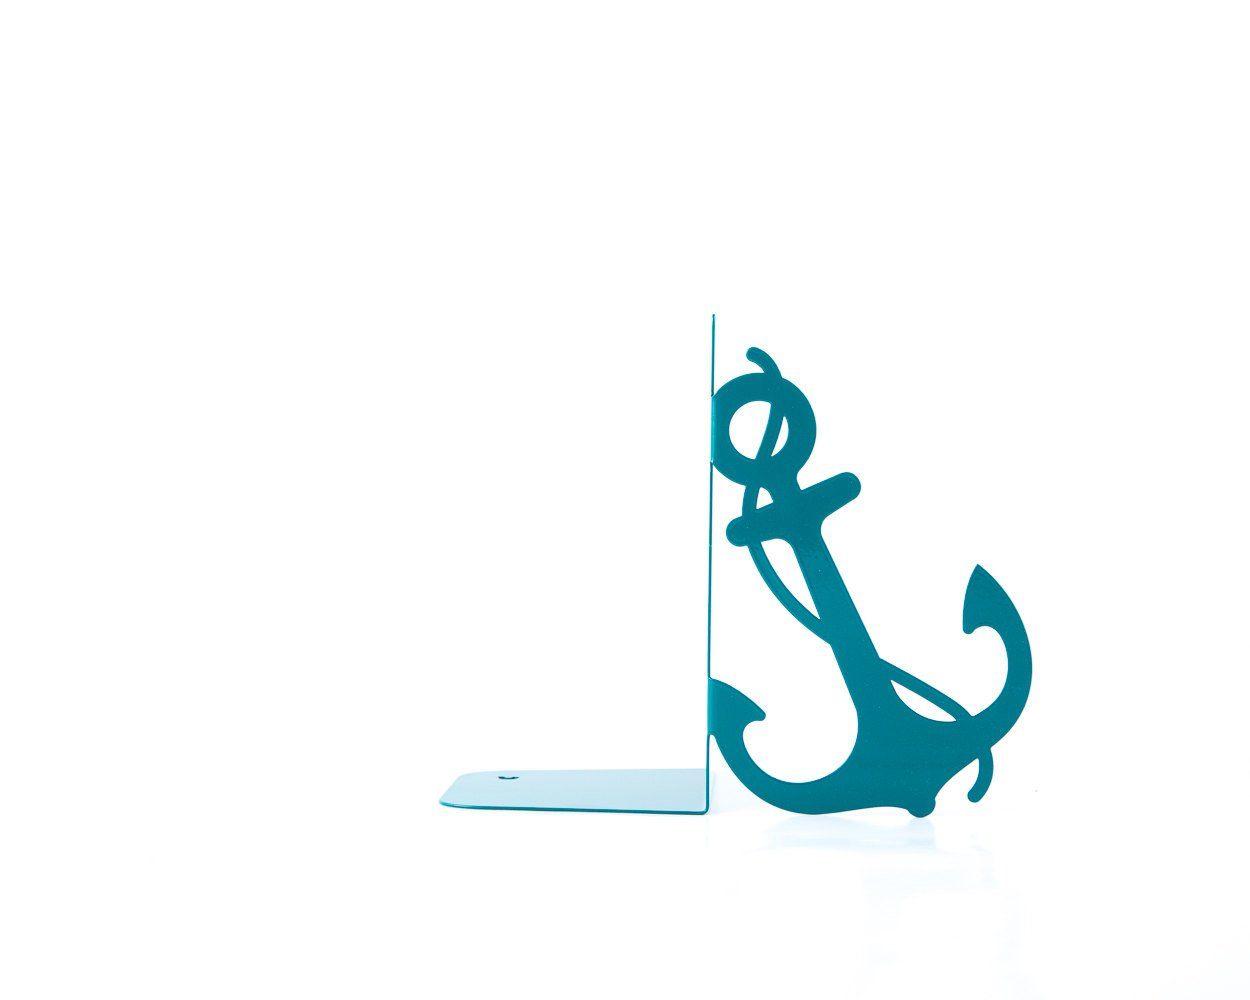 Metal Bookends Light house and anchor / sea theme nursery // beach house // modern home decor // housewarming gift //FREE SHIPPING WORLDWIDE - Design Atelier Article